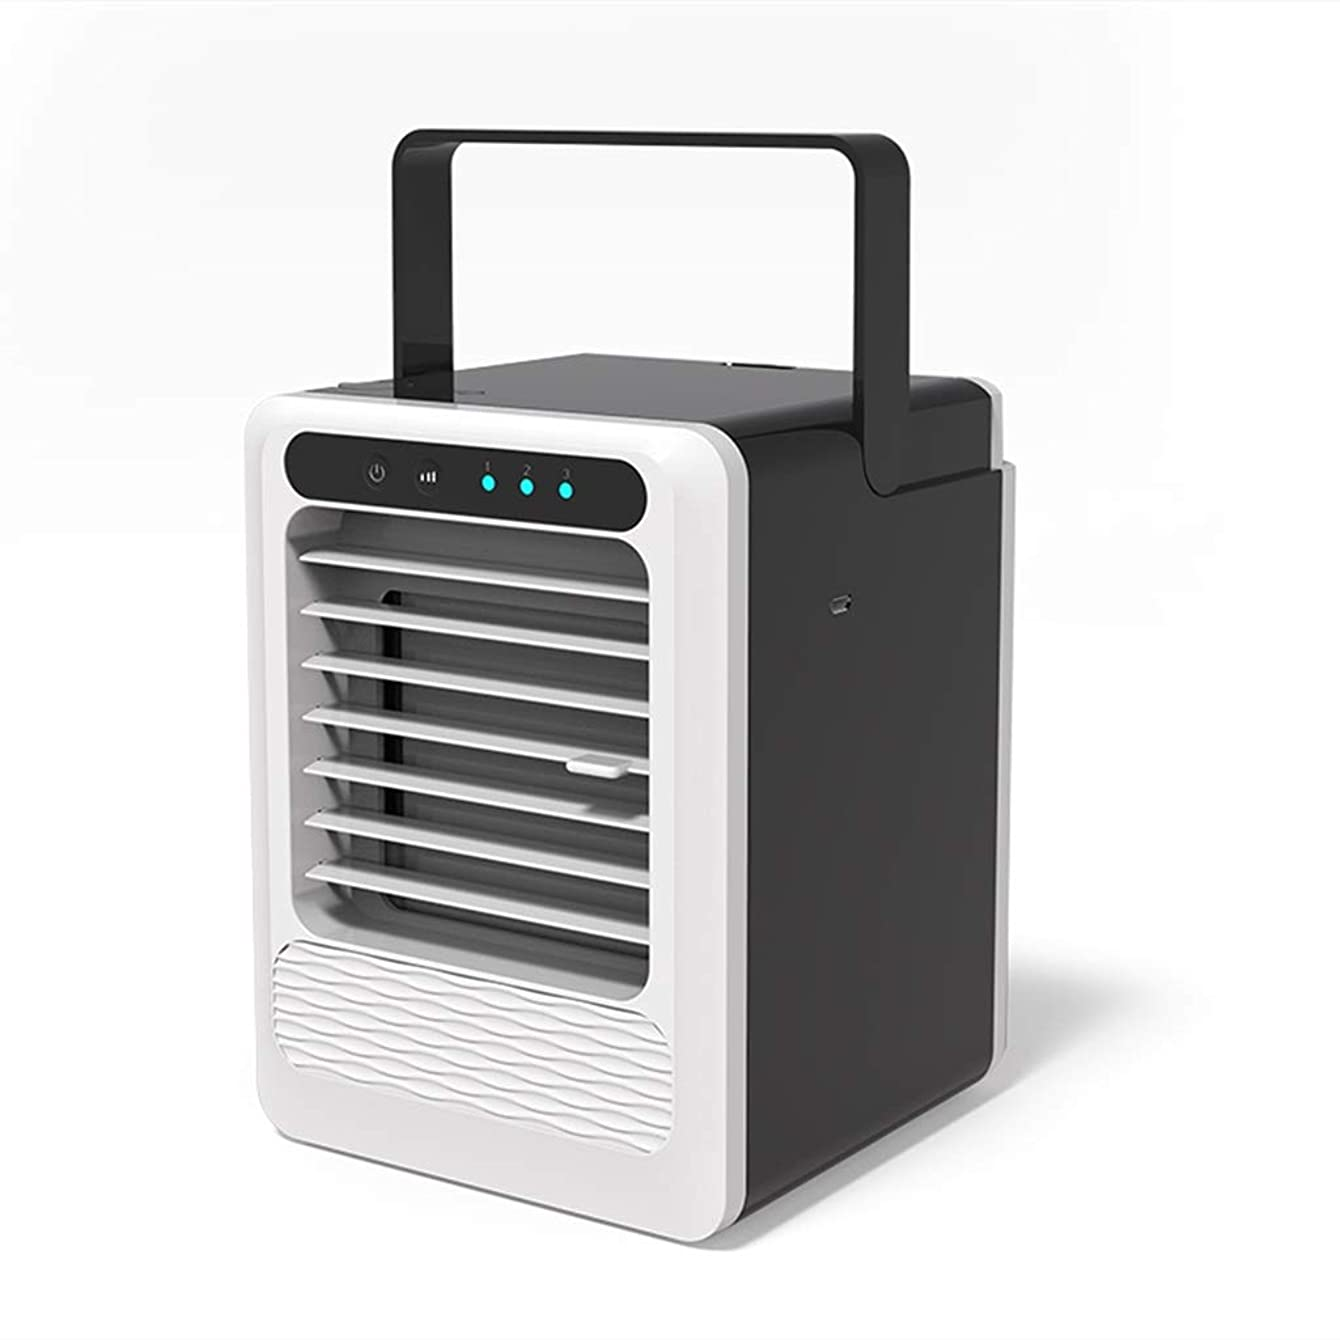 Slow Time Shop Personal Space Air Conditioner, USB Mini Portable Air Cooler, 3 in 1 Humidifier, Purifier, Evaporative Cooler Desktop Cooling Fan with 3 Speeds for Home Room Office